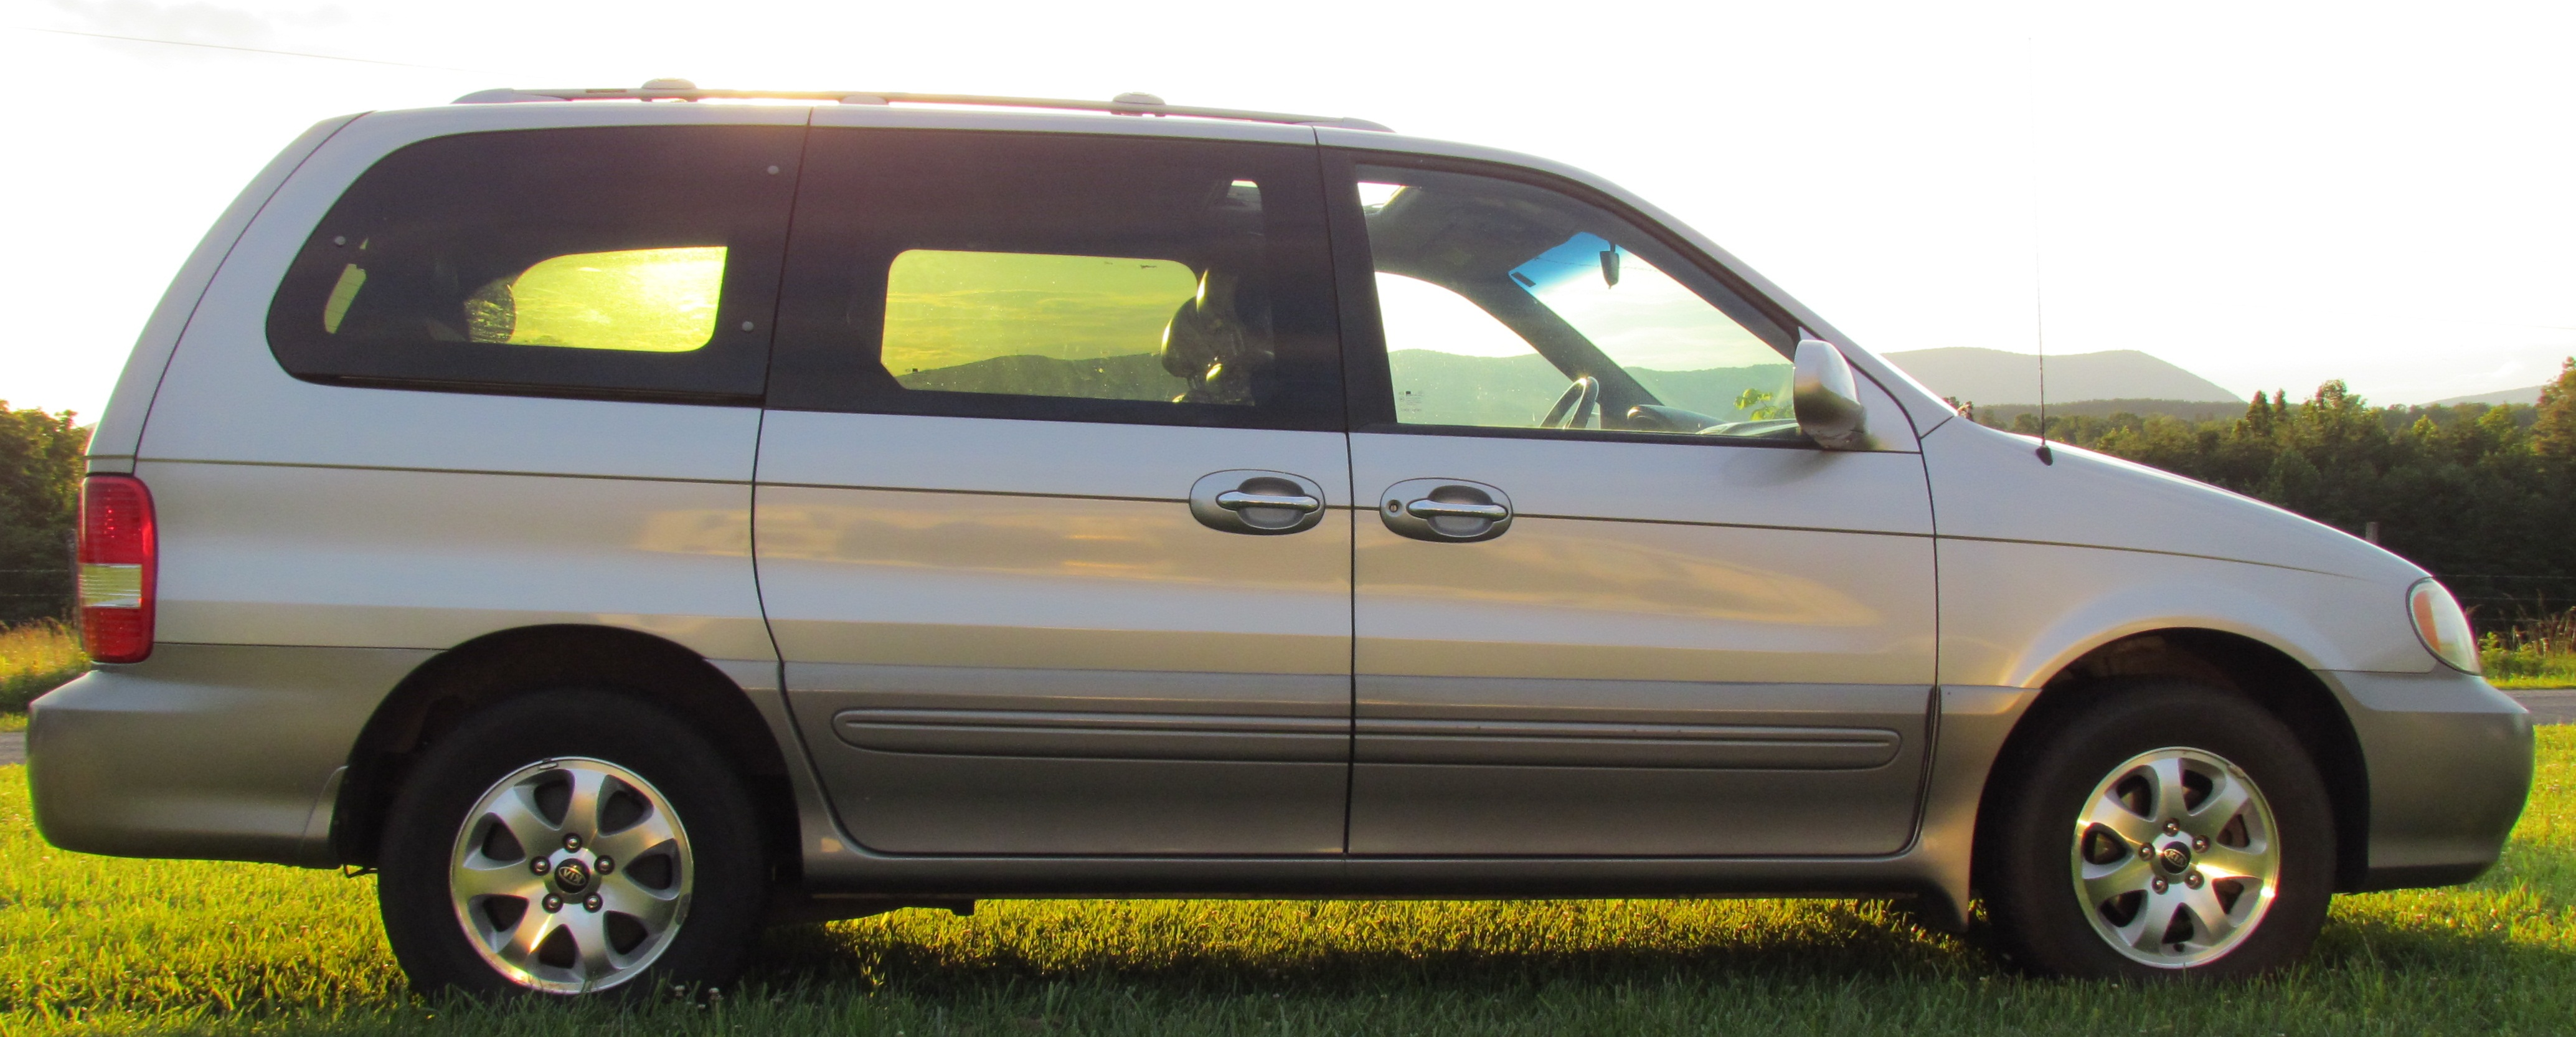 2005 Kia Carnival Photos  Informations  Articles